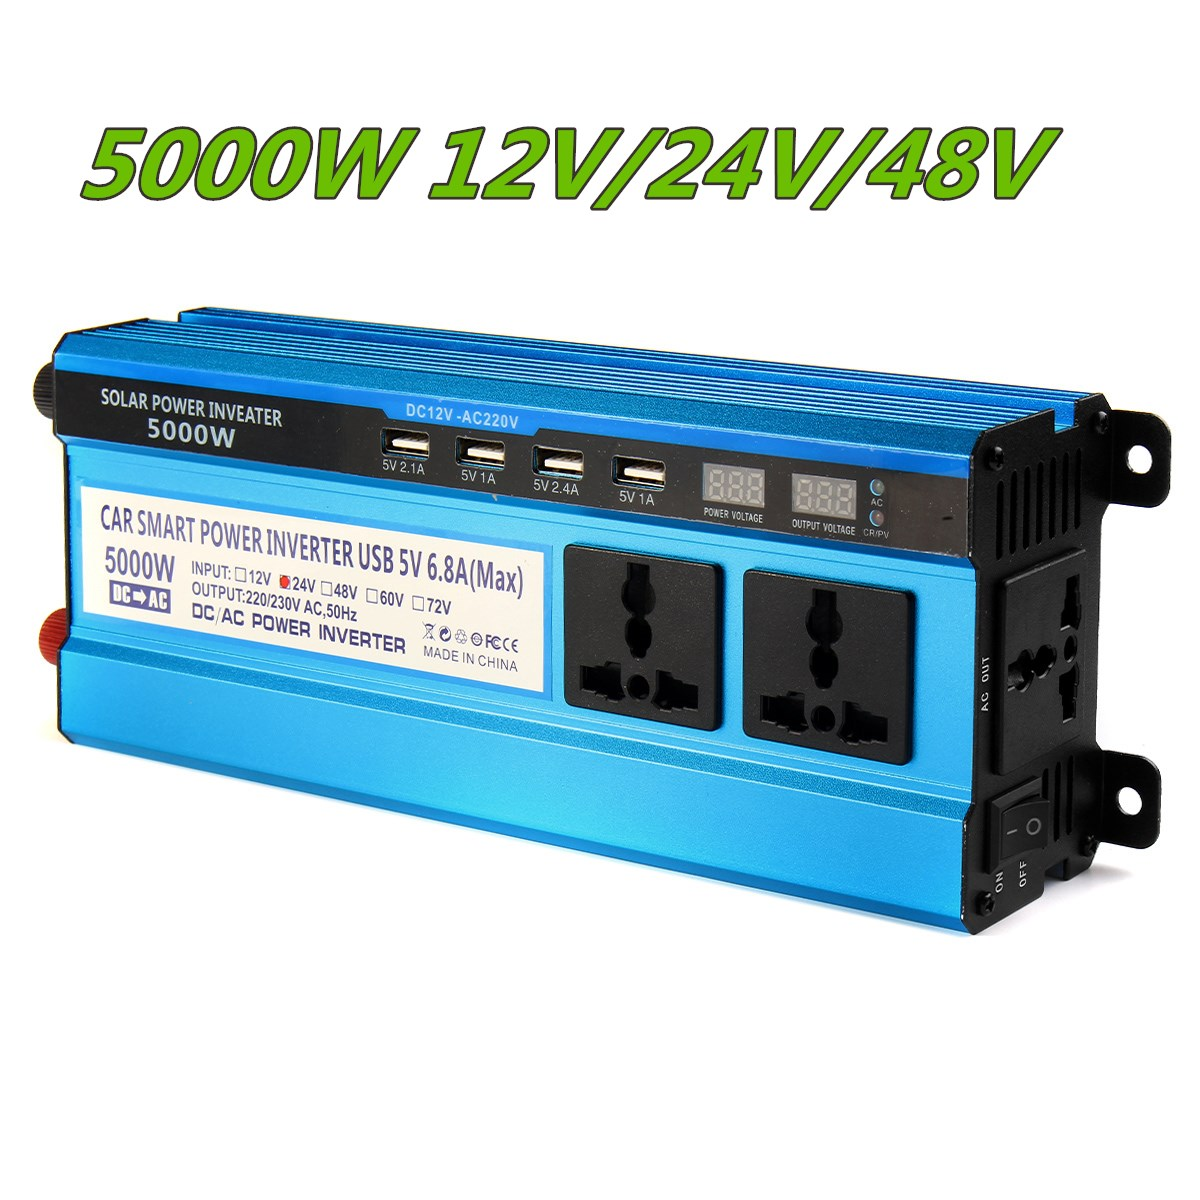 Solar Inverter DC 12V 24V 48V to AC 220V 3000W 4000W 5000W Inverter 20